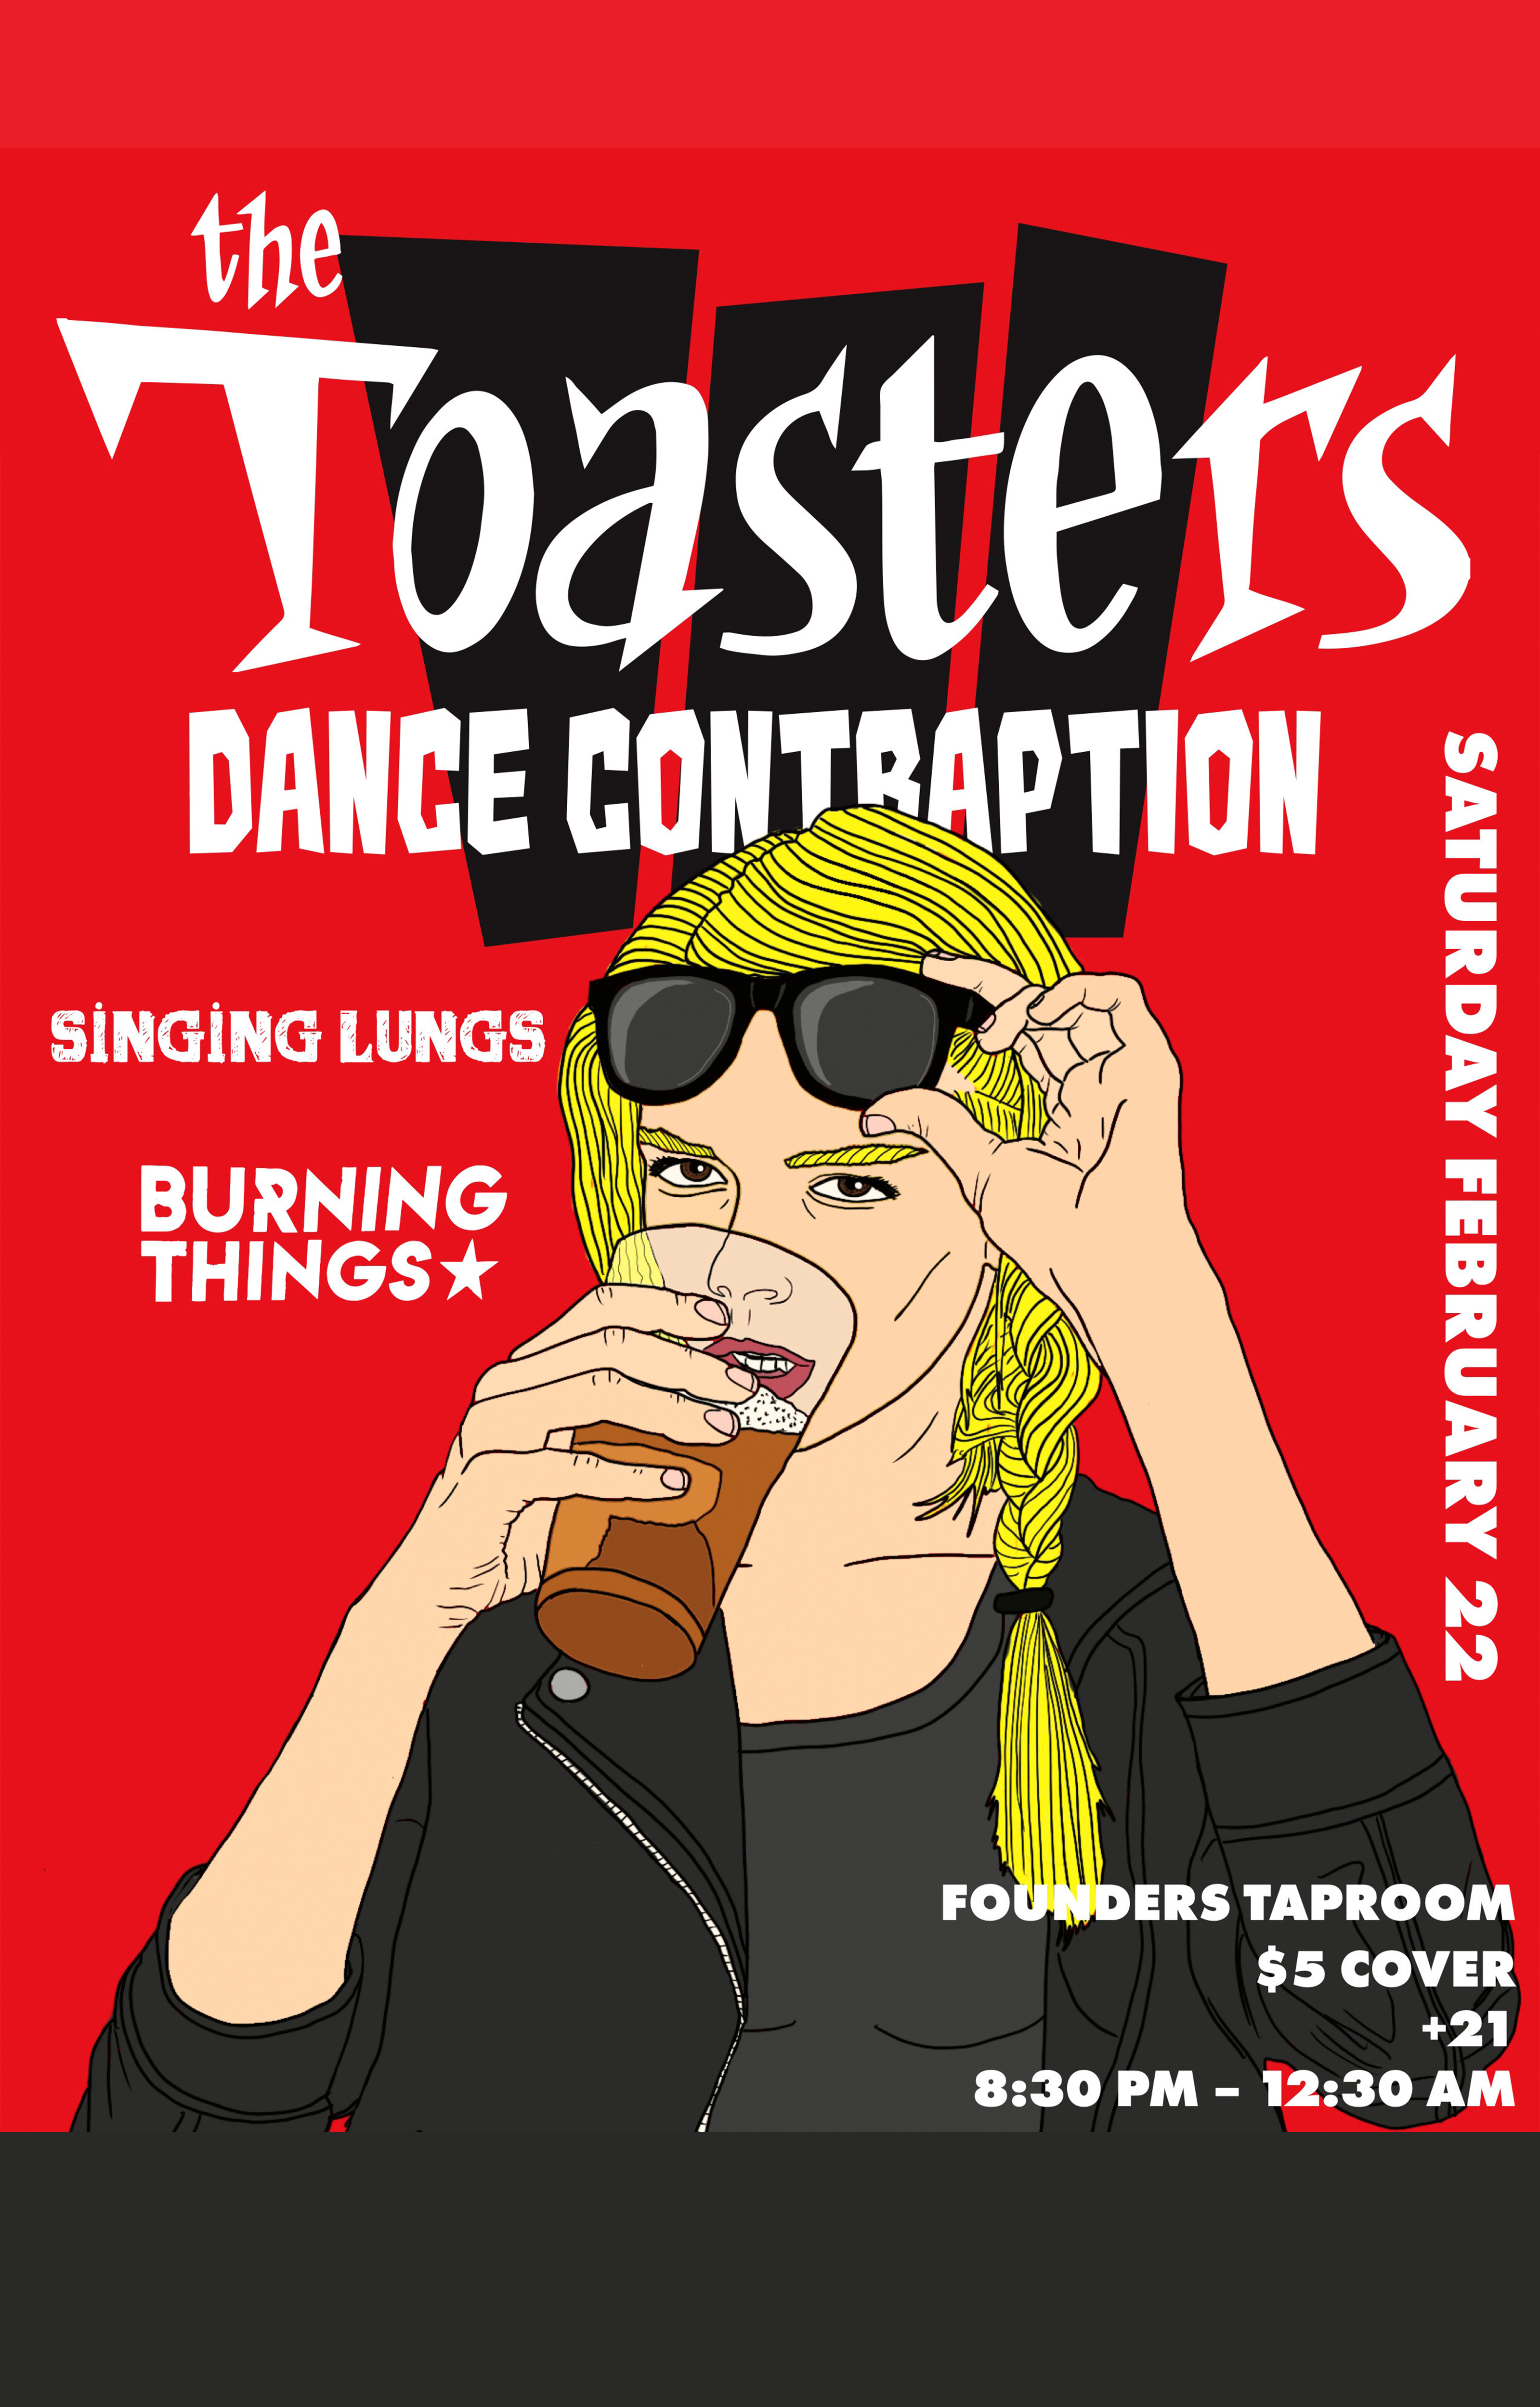 The Toasters Dance Contraption event poster hosted by Founders Brewing Co.